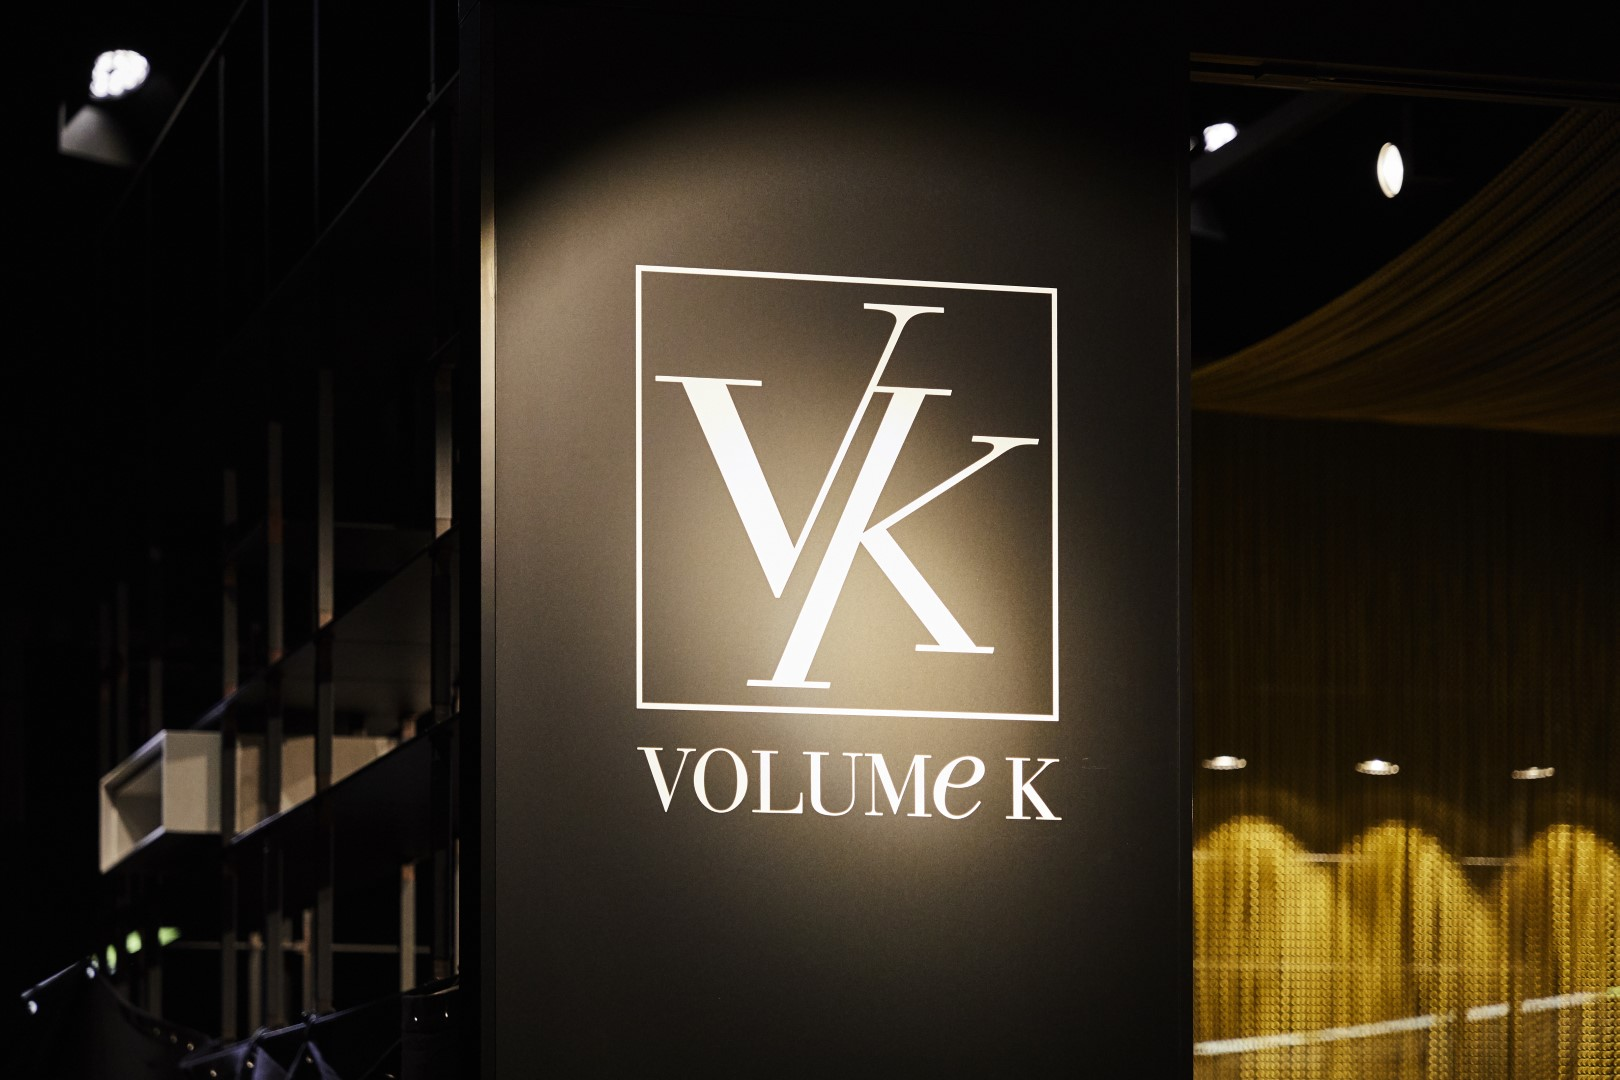 VOLUME K + FORM EXCLUSIV - IMM 2019